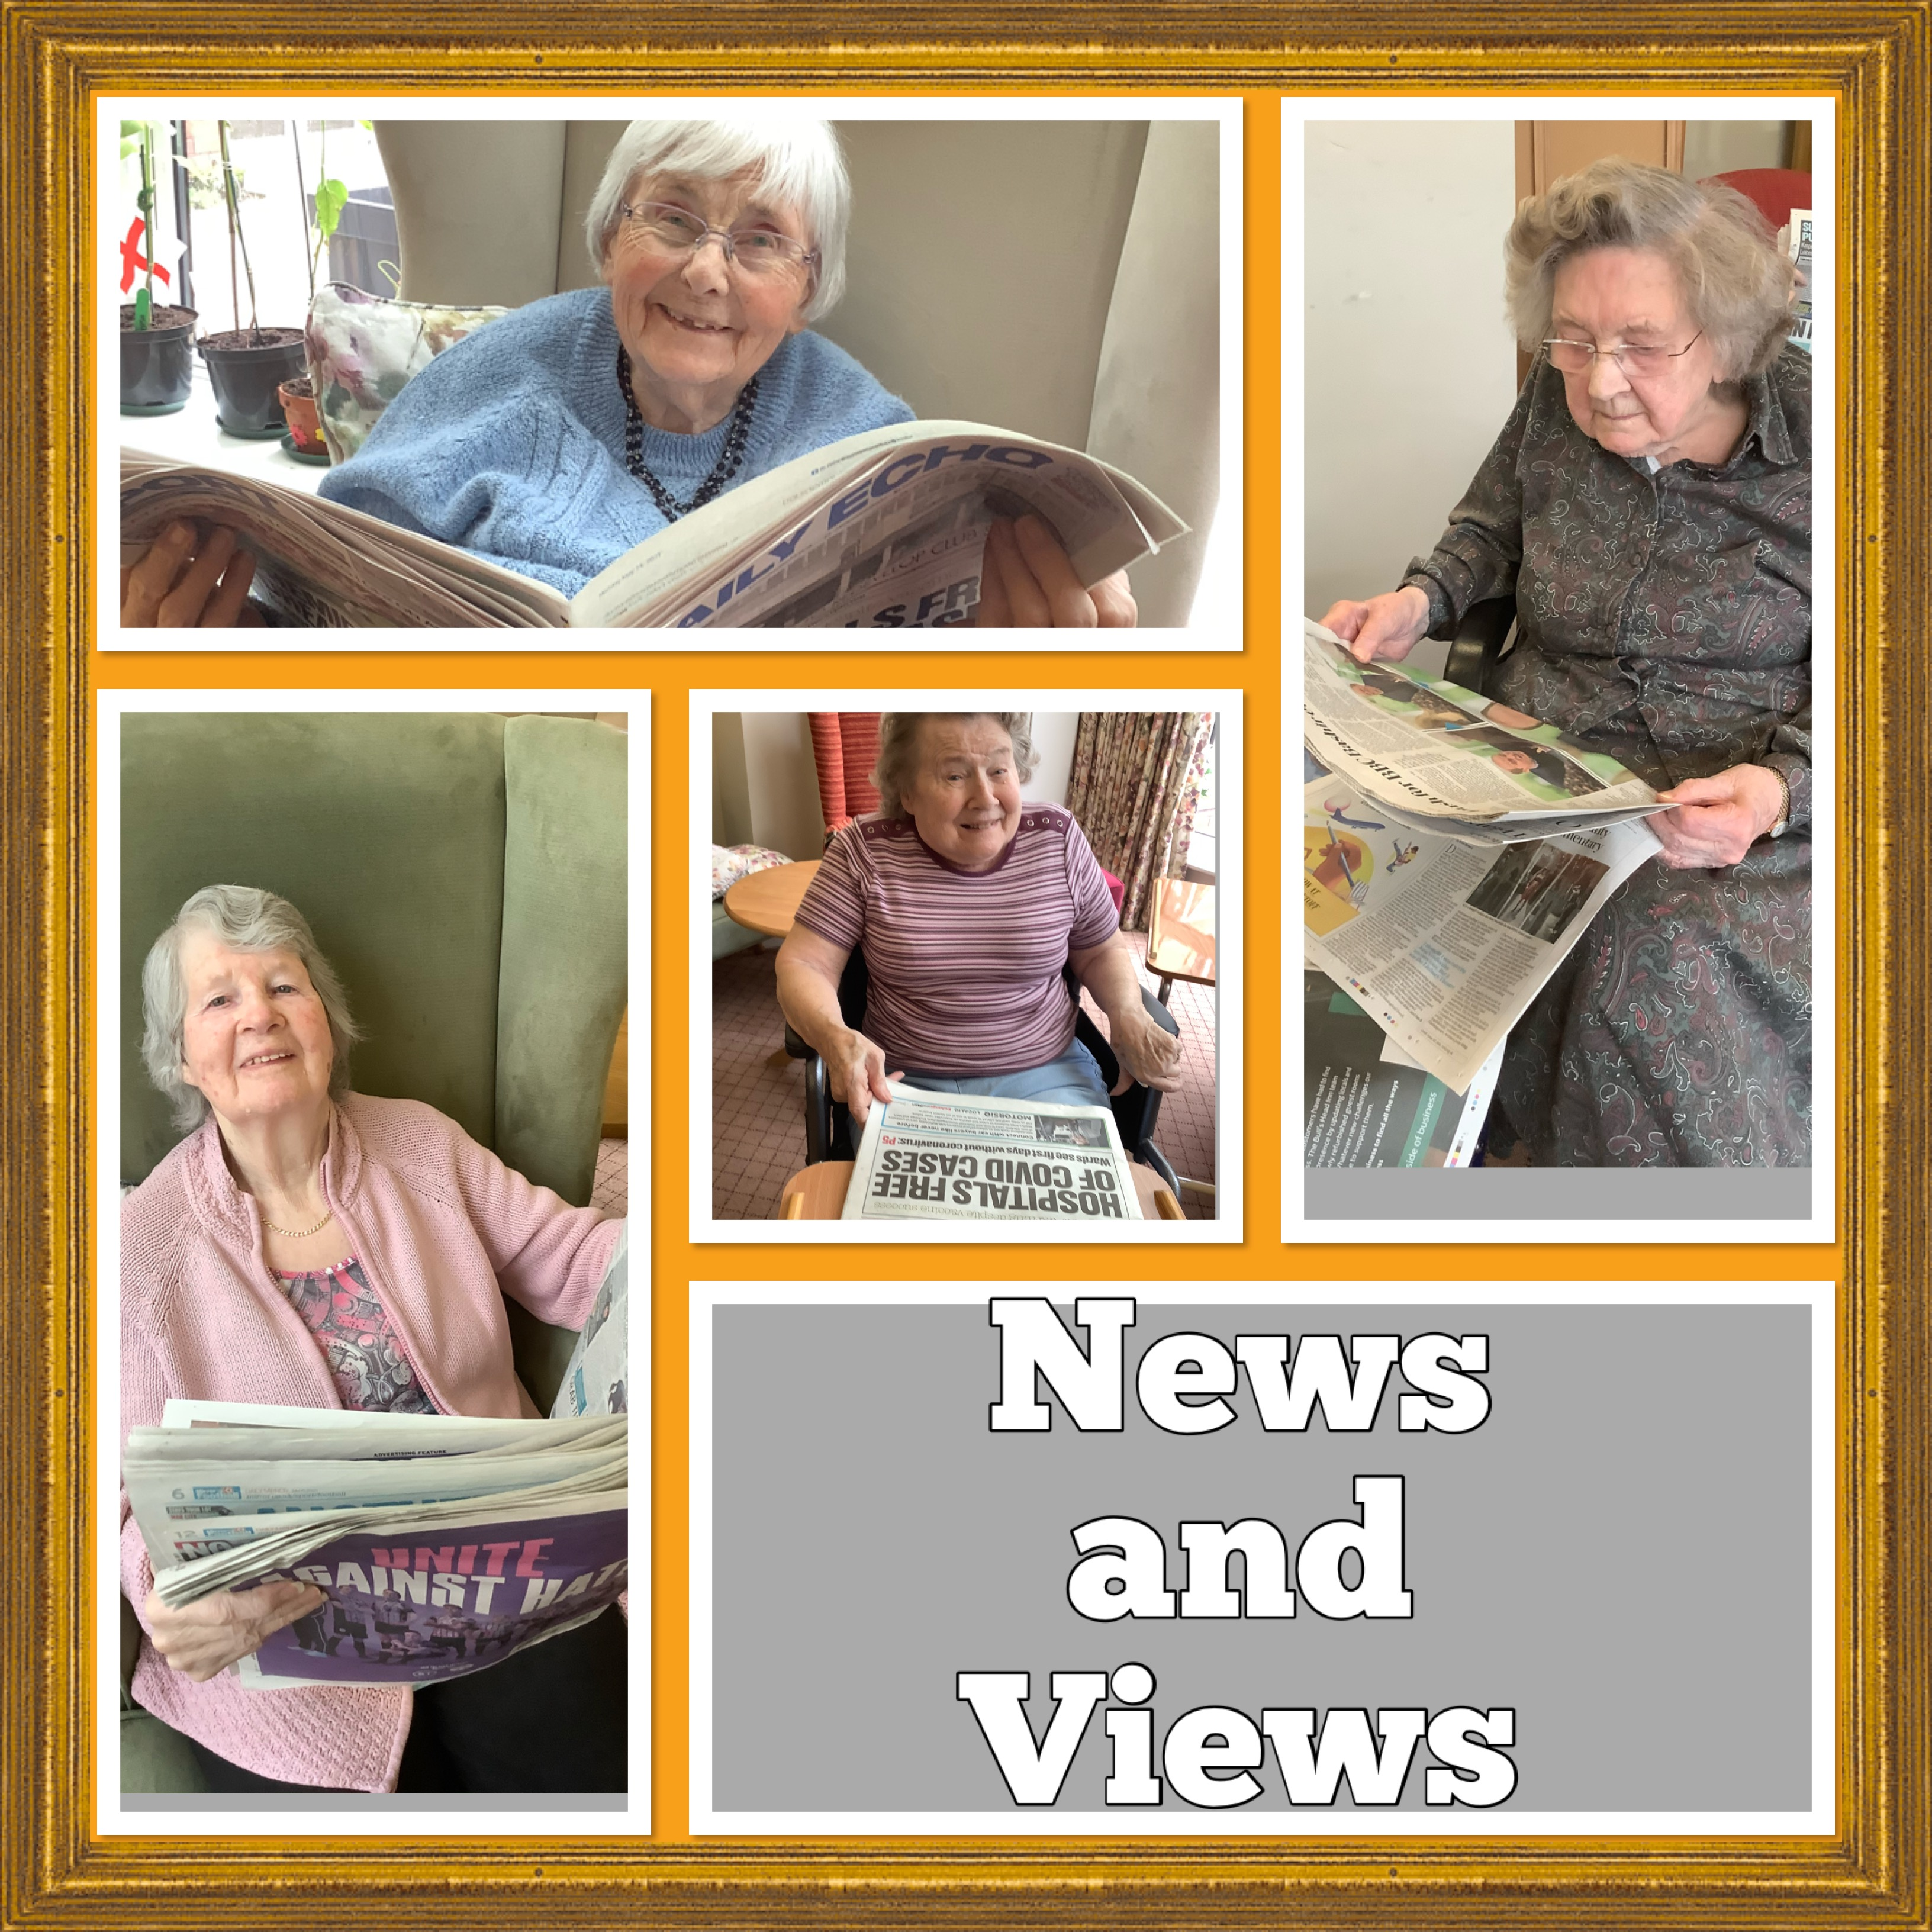 News and Views collage